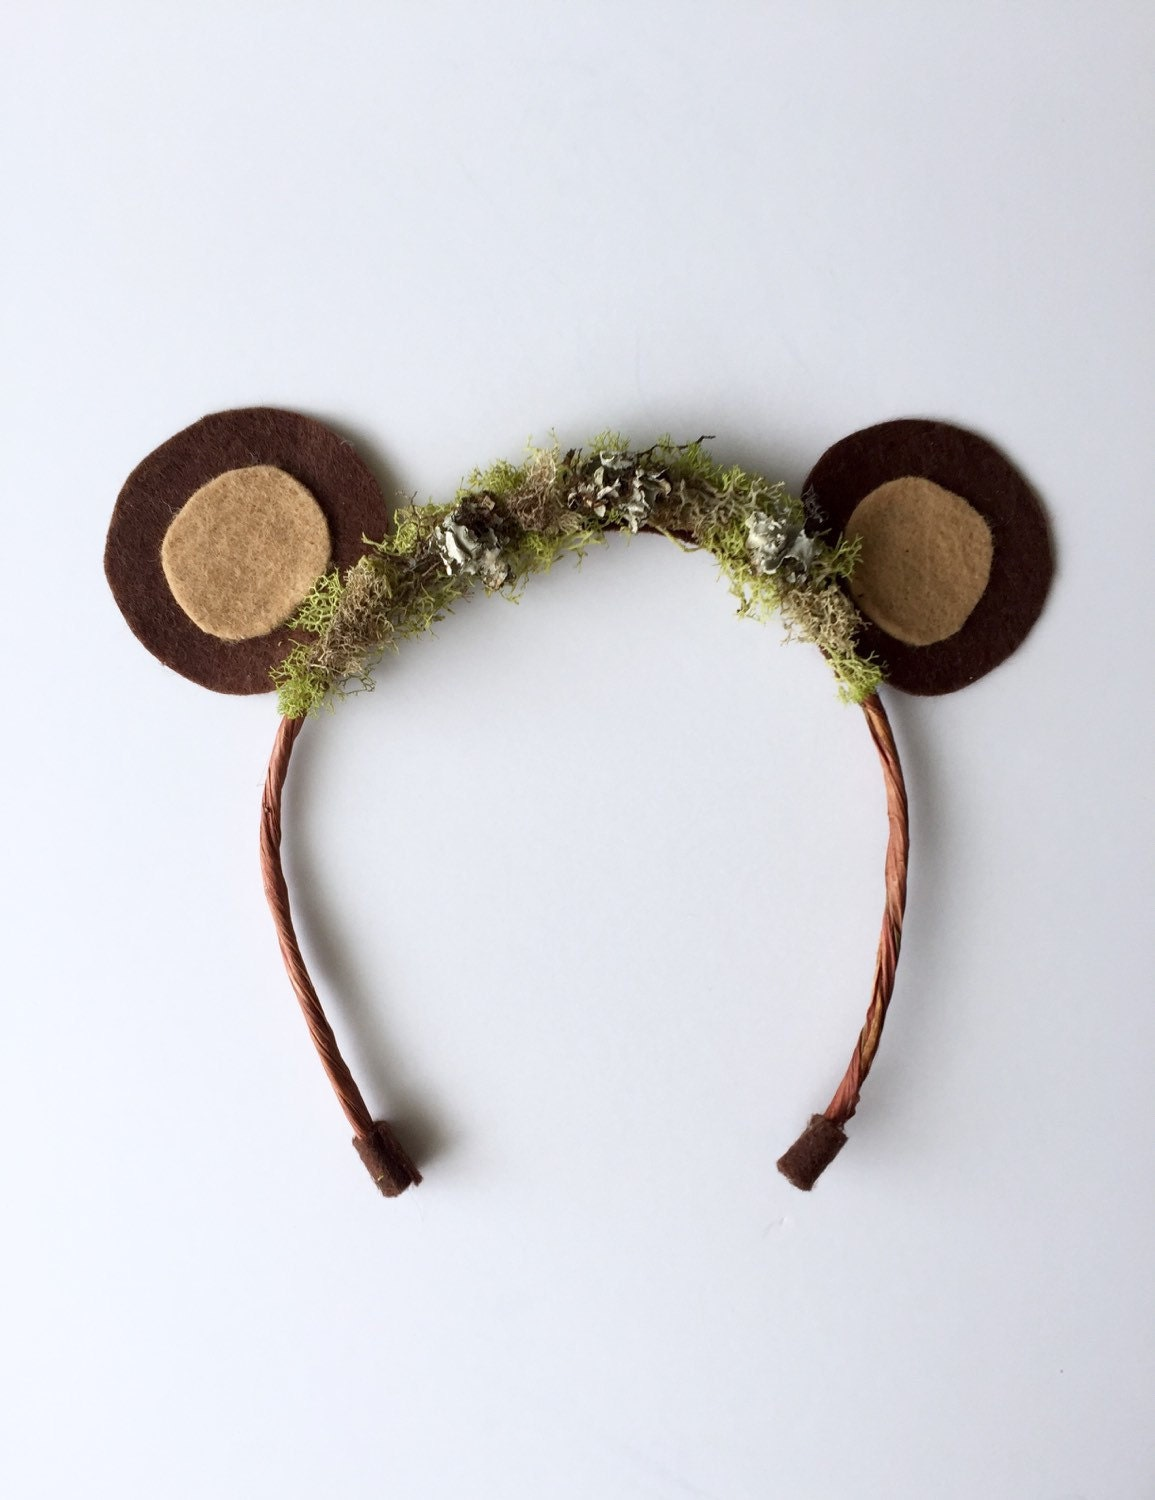 how to put bear ears on photo